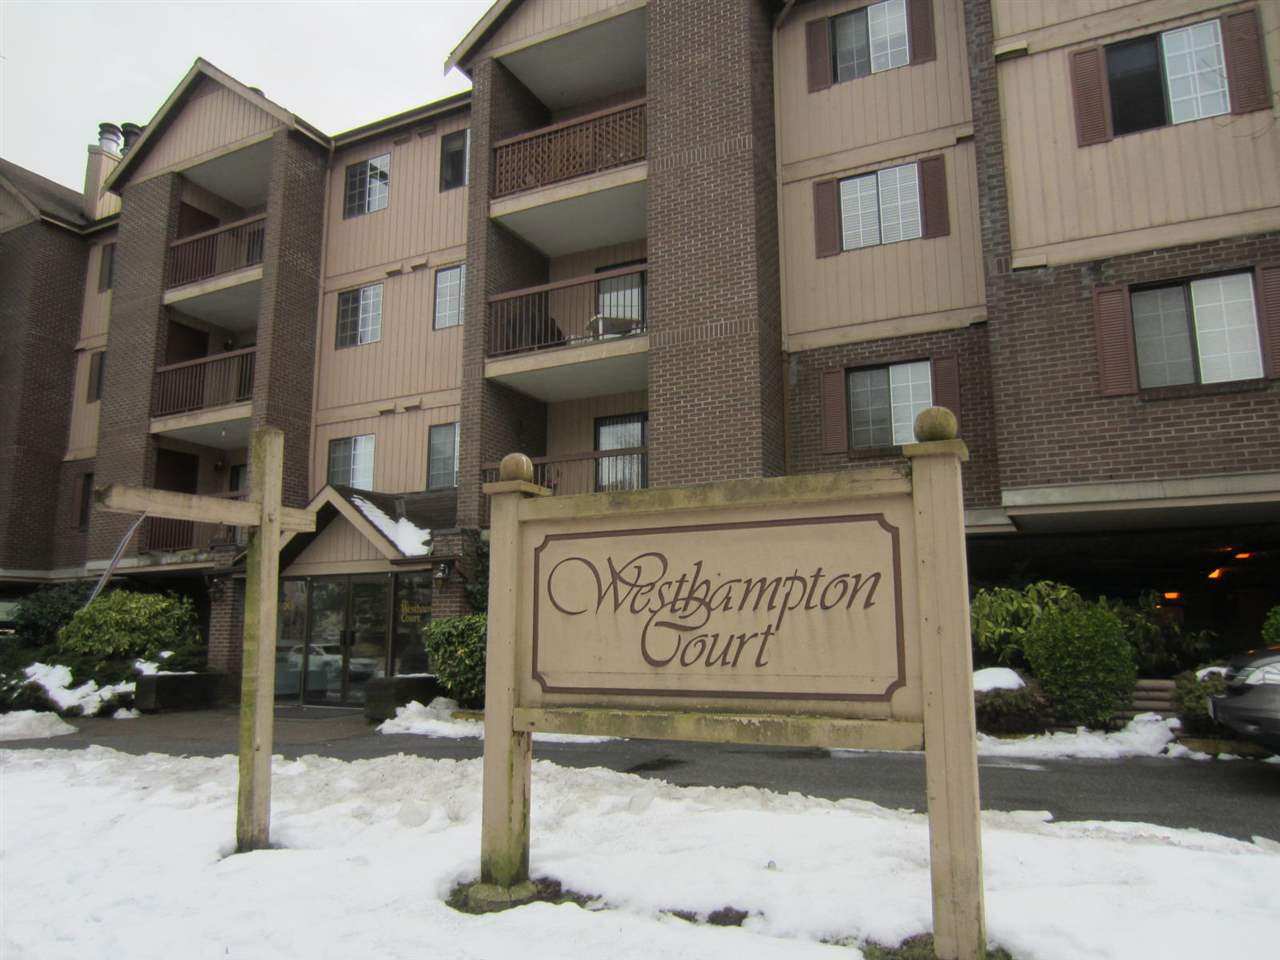 """Main Photo: 229 8500 ACKROYD Road in Richmond: Brighouse Condo for sale in """"WESTHAMPTON COURT"""" : MLS®# R2510532"""